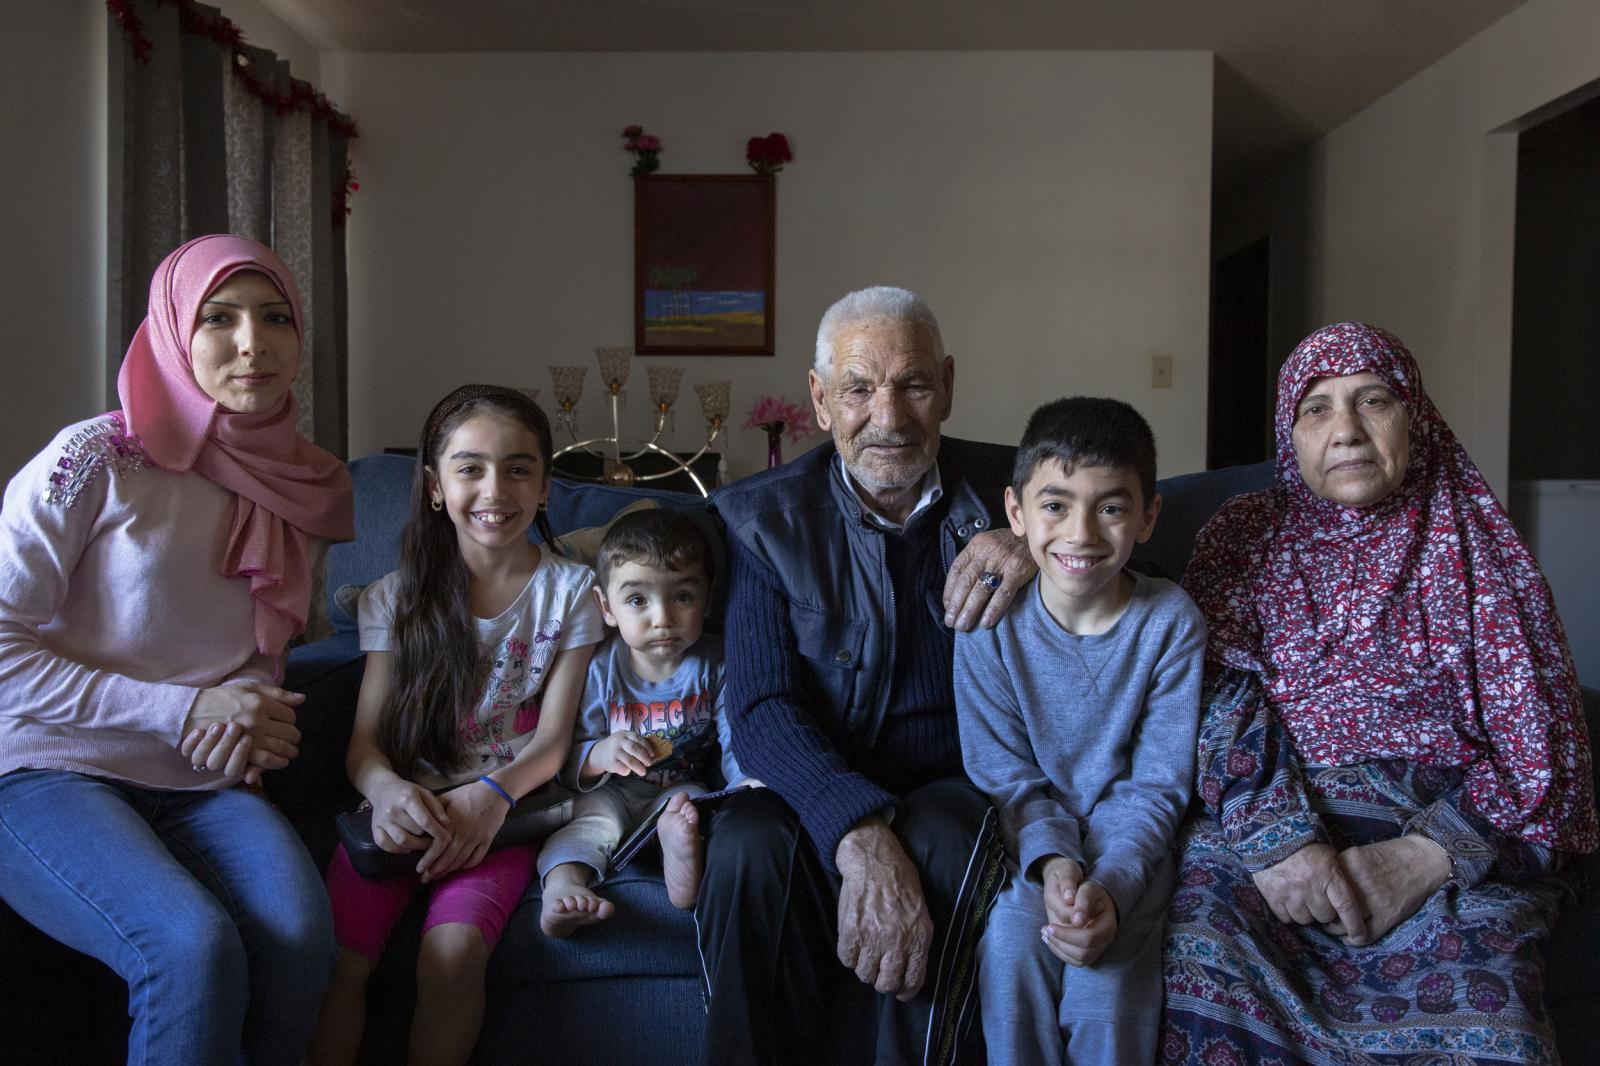 Khaled Assaf and his wife Mariam Rastanawi with their daughter and grandchildren at home in Indianapolis, Indiana on March 26, 2019. The couple arrived in the United States as Syrian refugees after years of waiting. They are two of the lucky few, as the United States has all but stopped allowing Syrian refugees into the country.